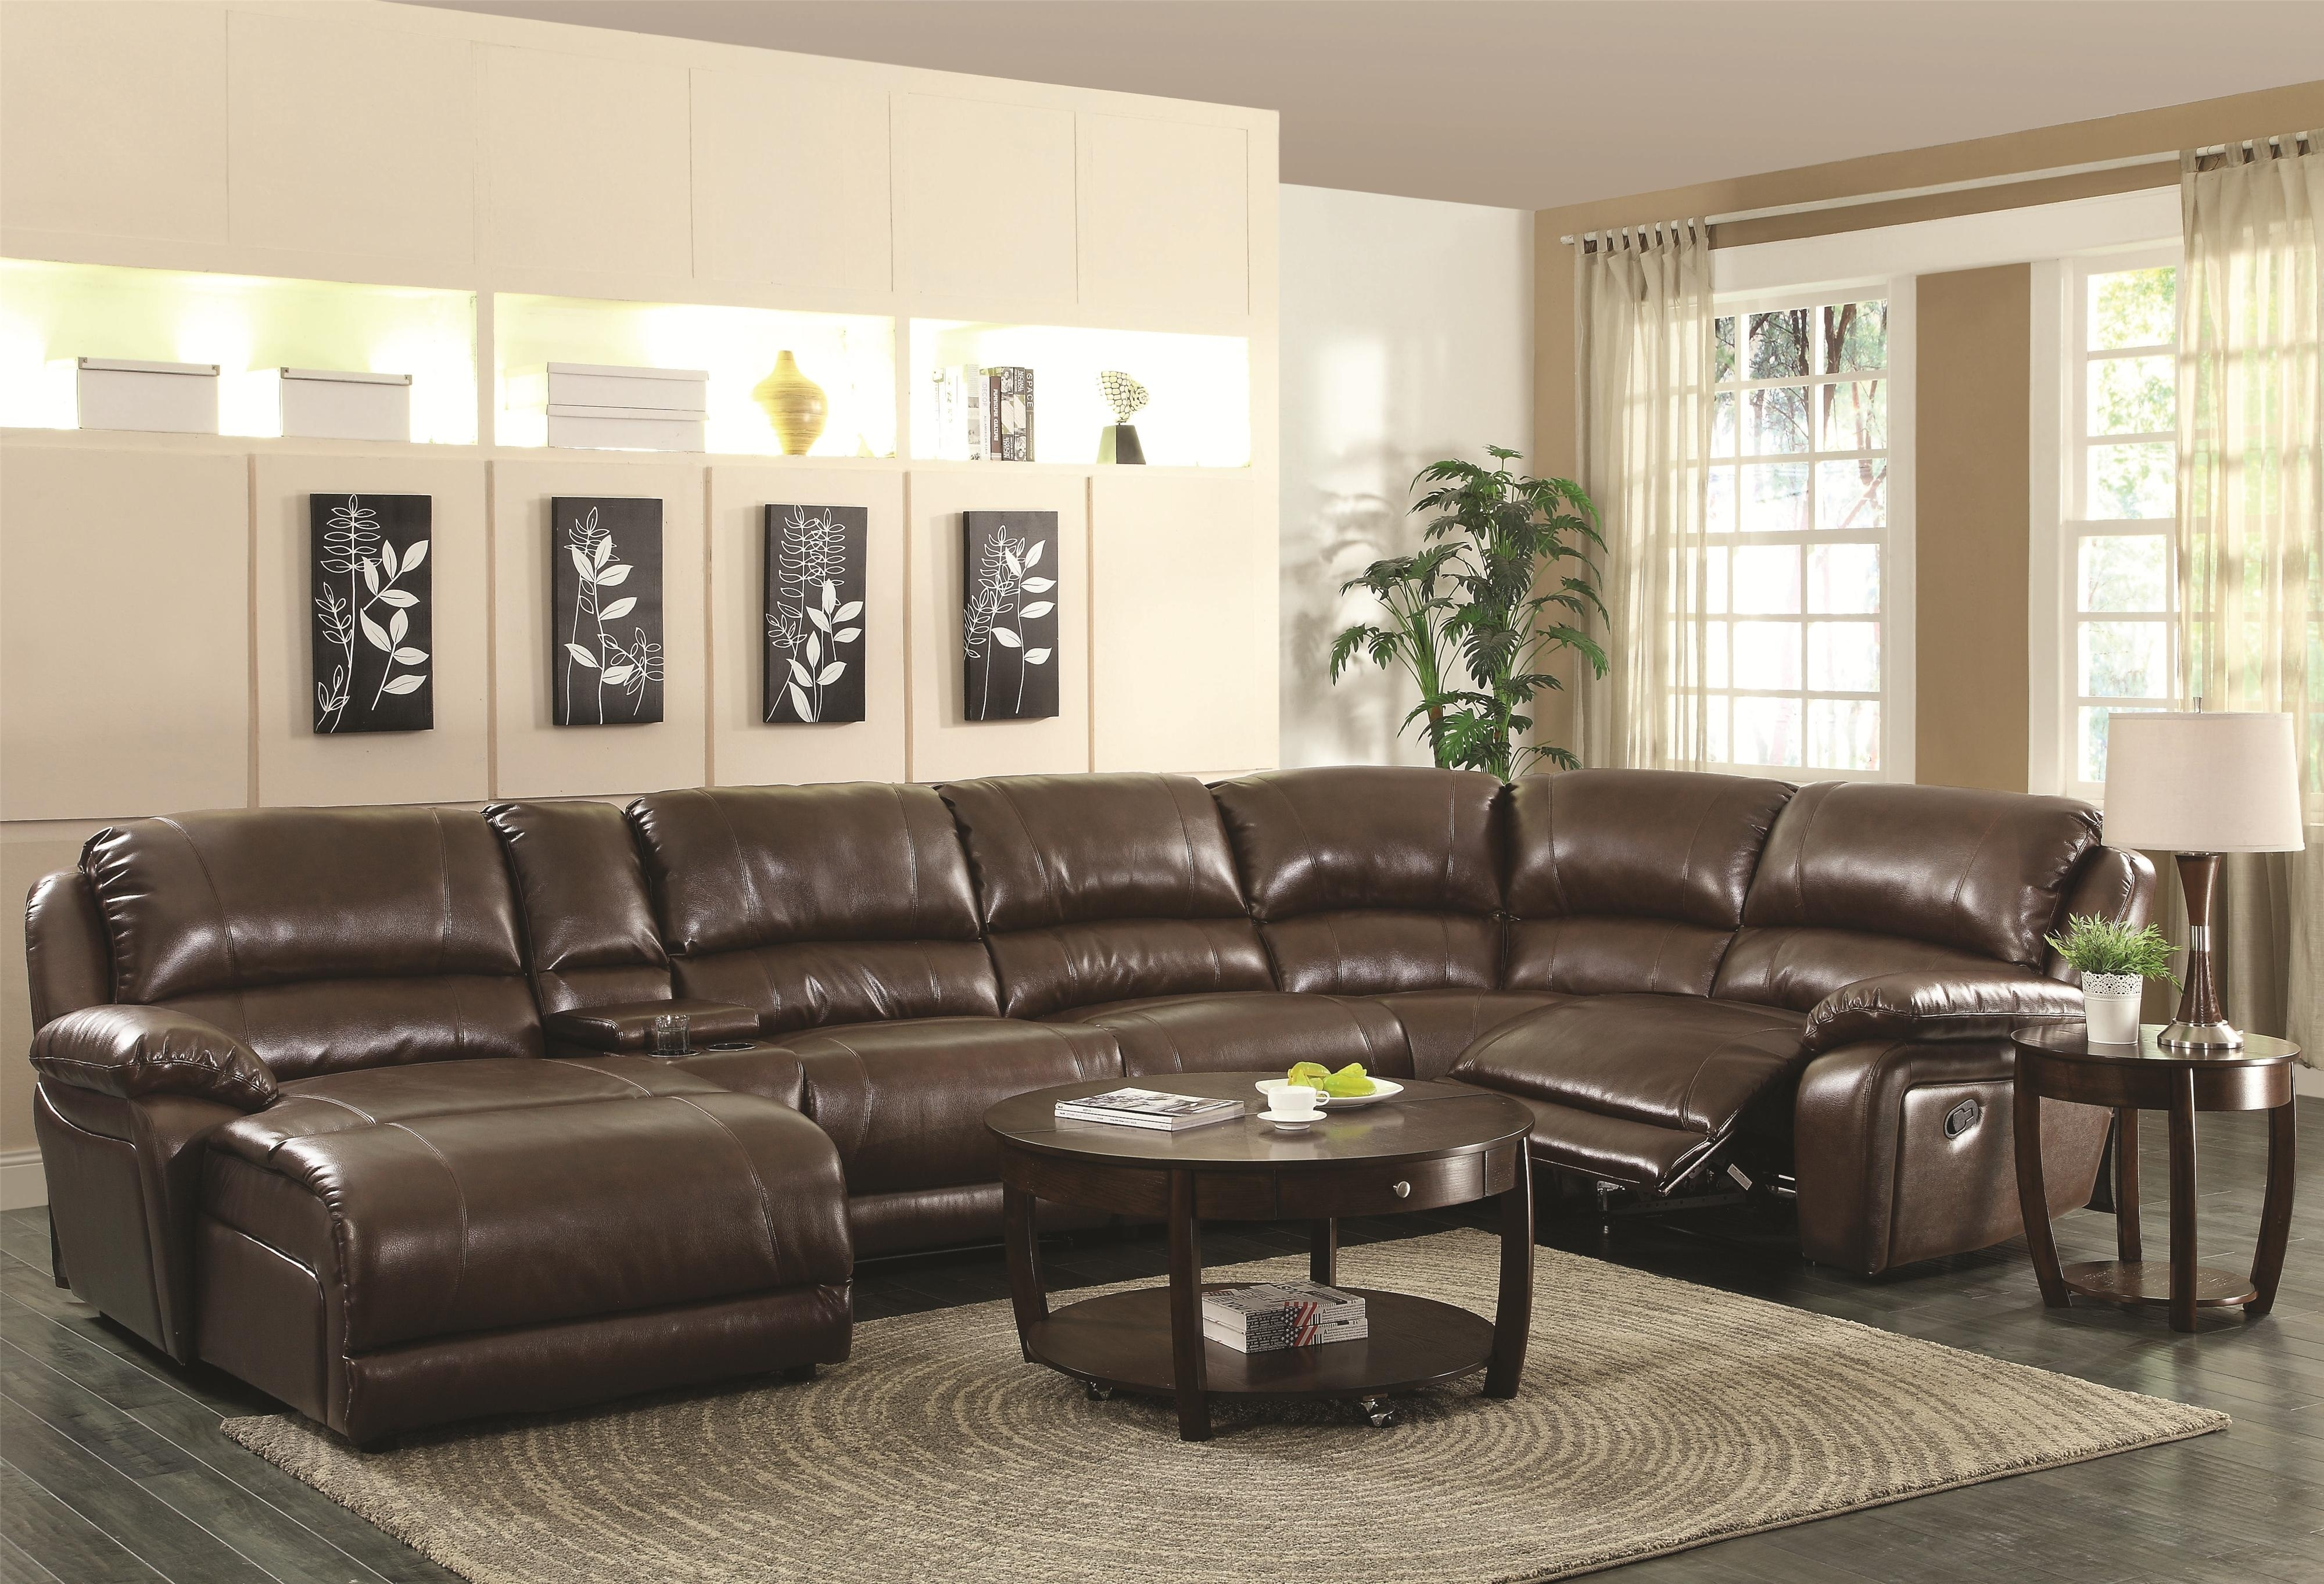 6 Piece Leather Sectional With Recliner And Chaise Lounge pertaining to 6 Piece Leather Sectional Sofas (Image 4 of 10)